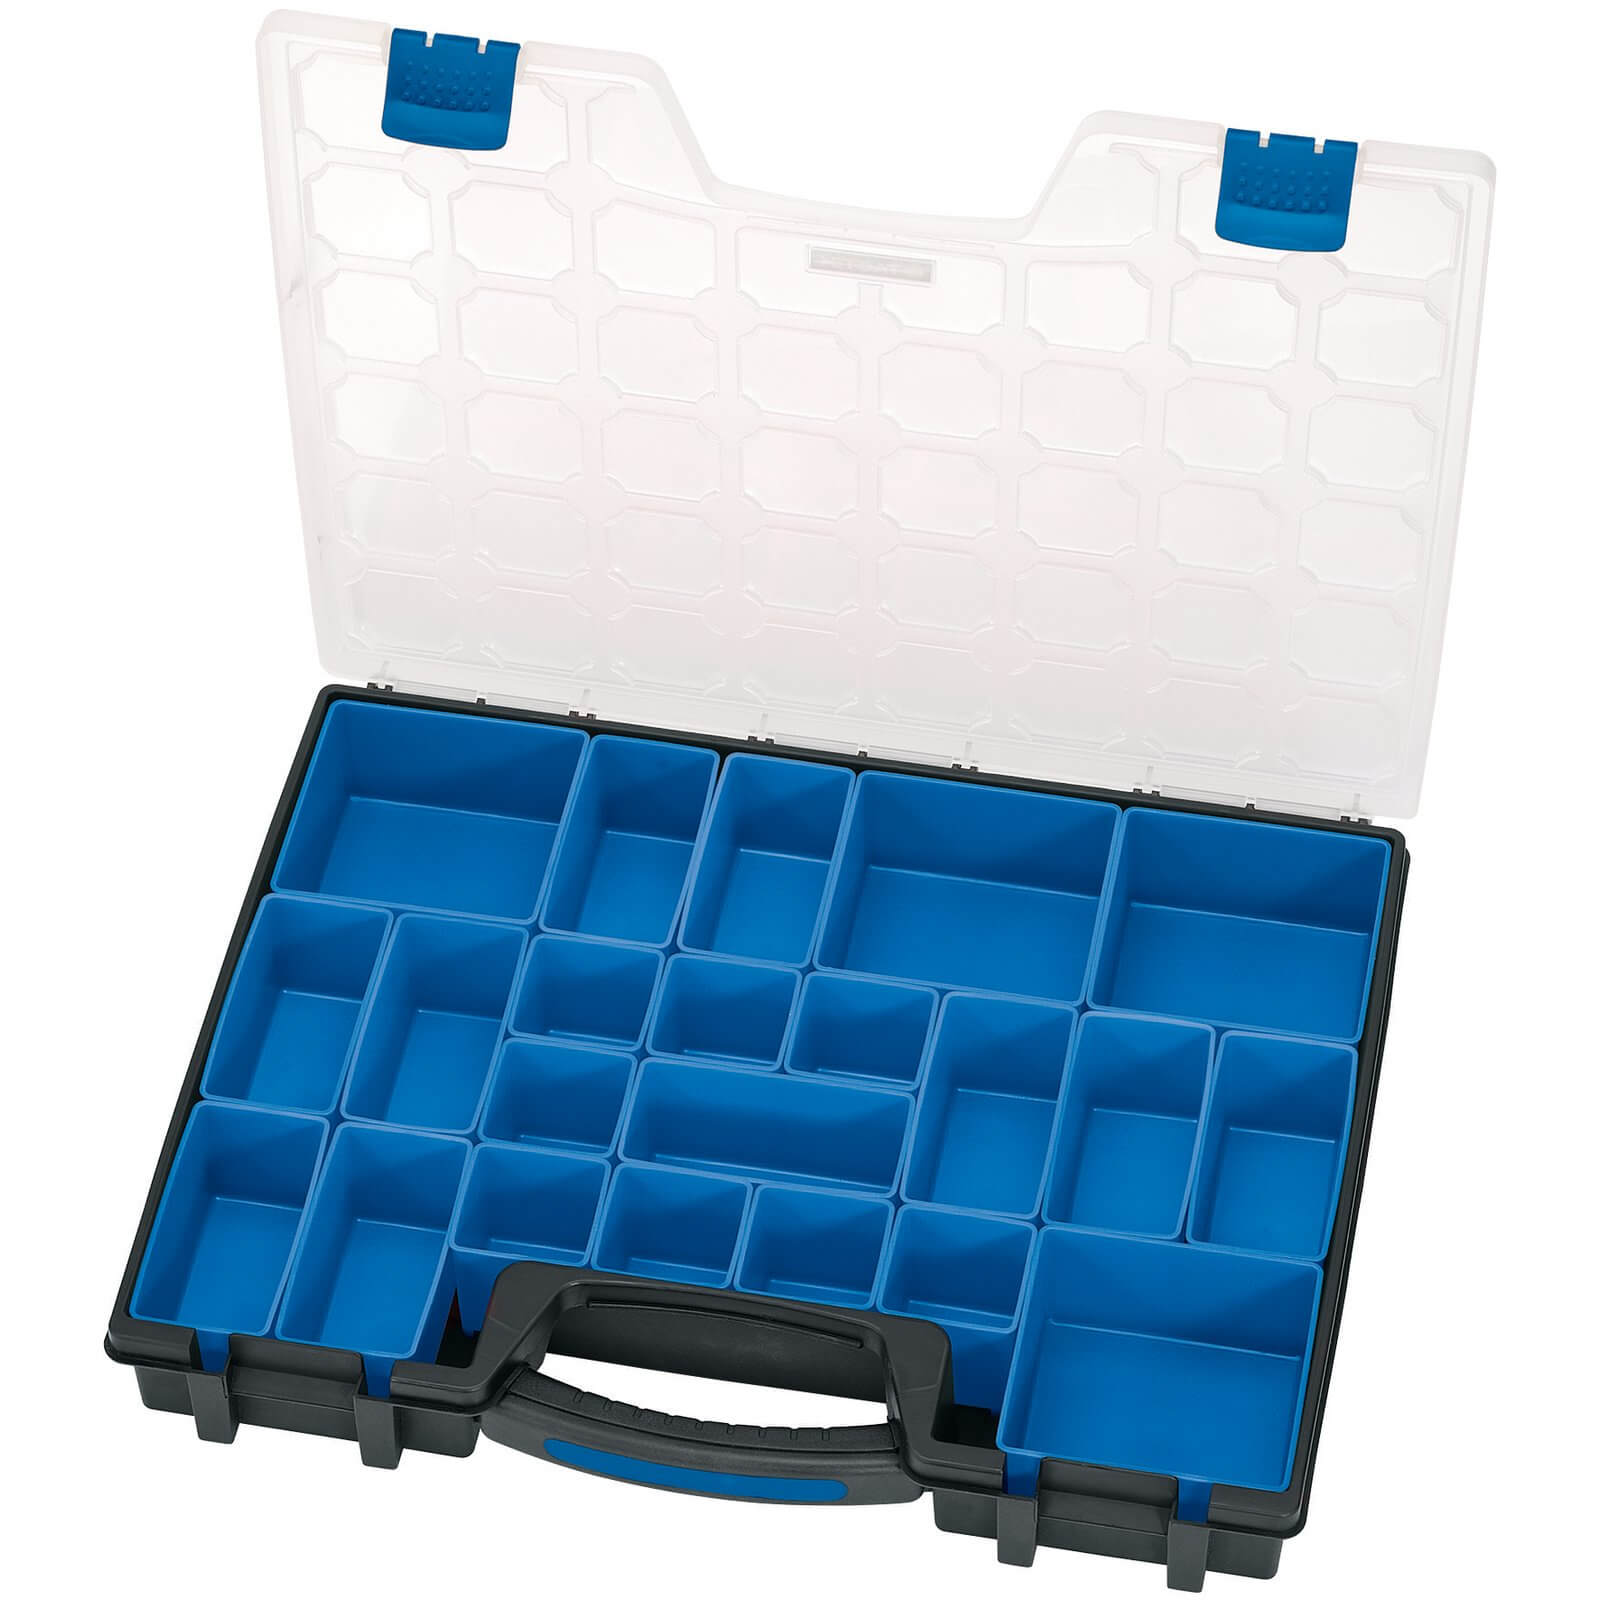 Image of Draper 22 Compartment Plastic Organiser